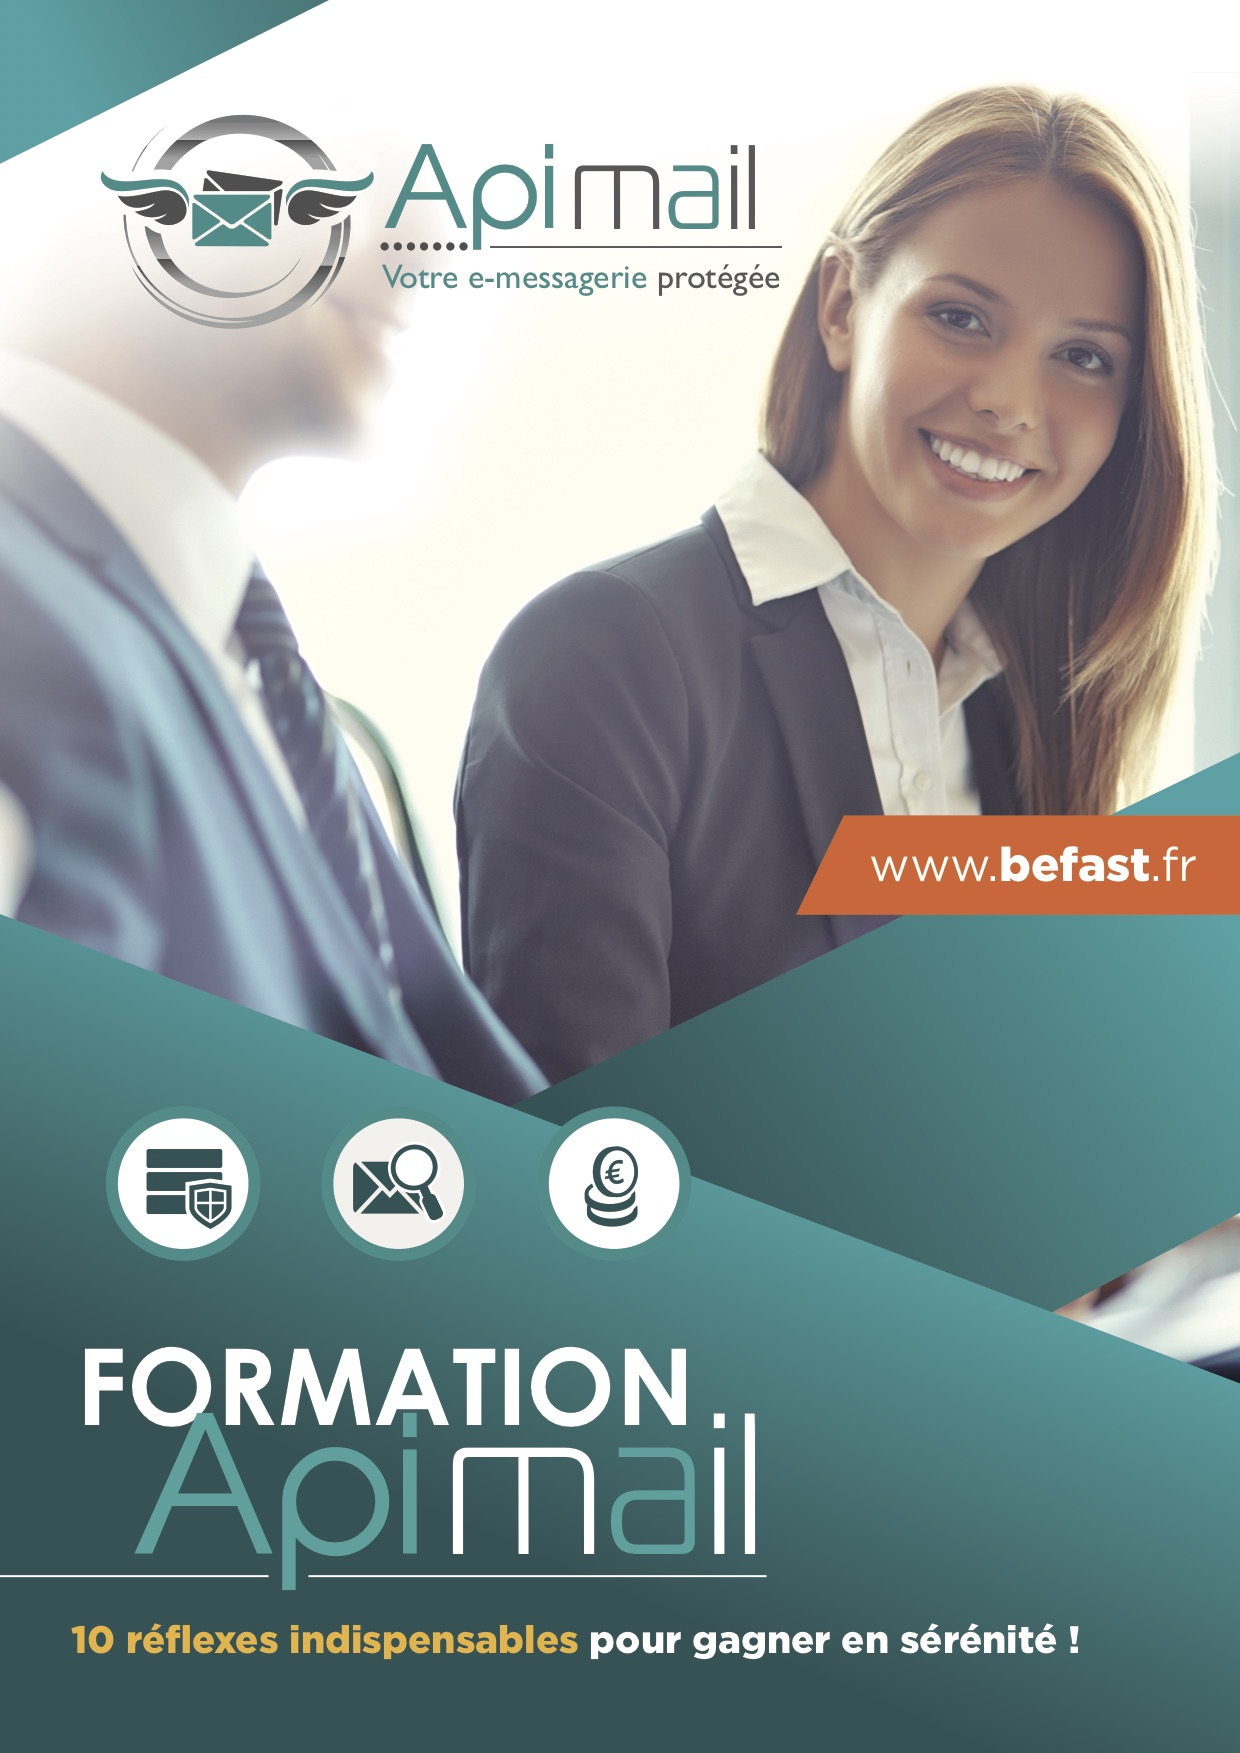 Formation Apimail